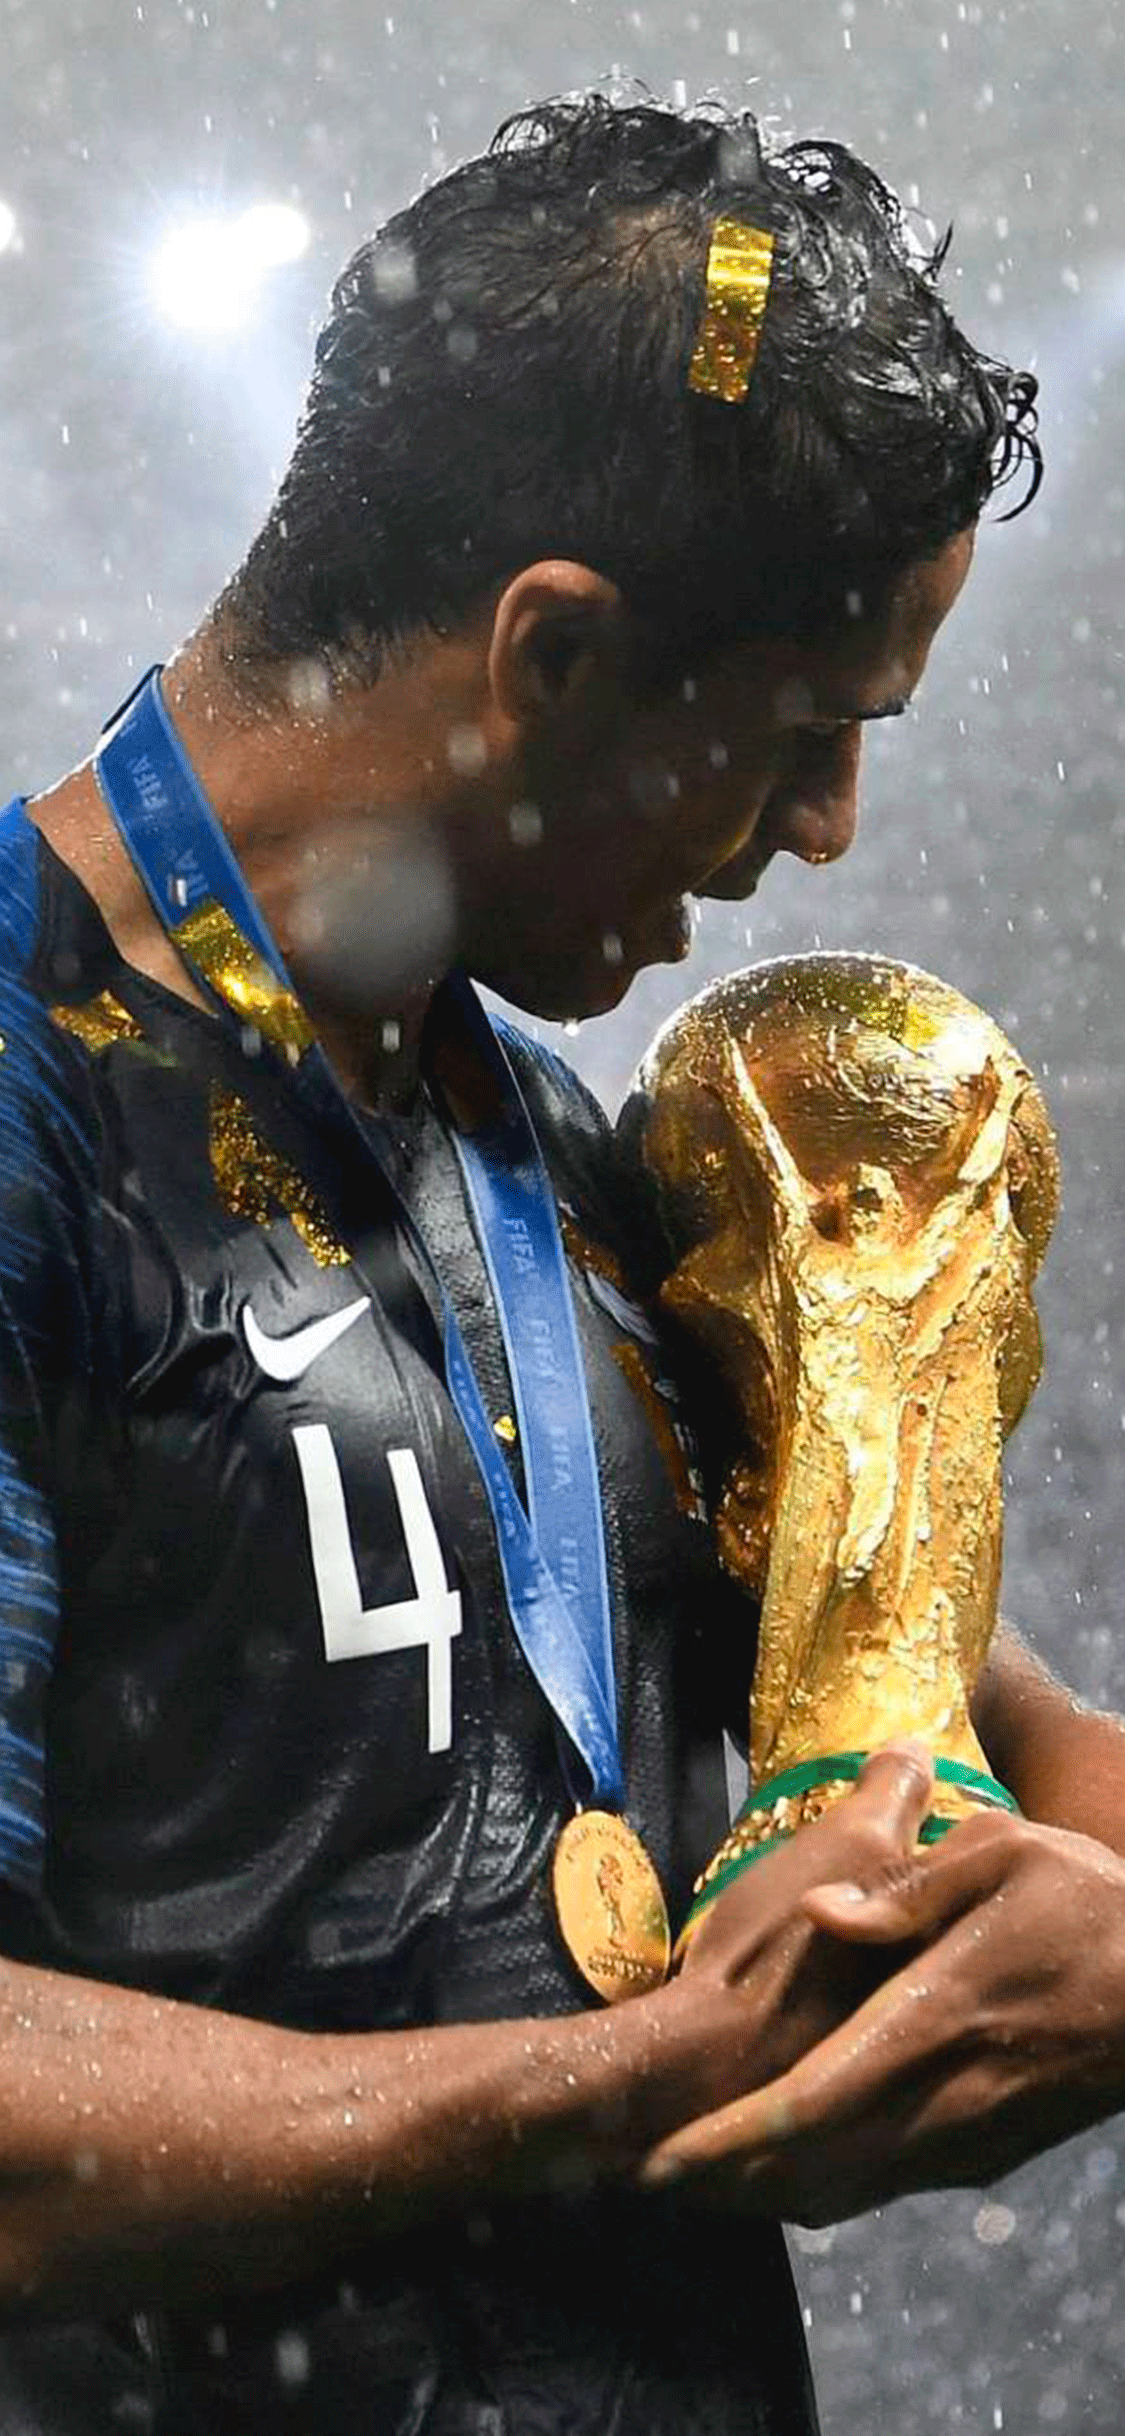 iPhone wallpaper fifa world cup 2018 france3 Fonds d'écran iPhone du 17/07/2018